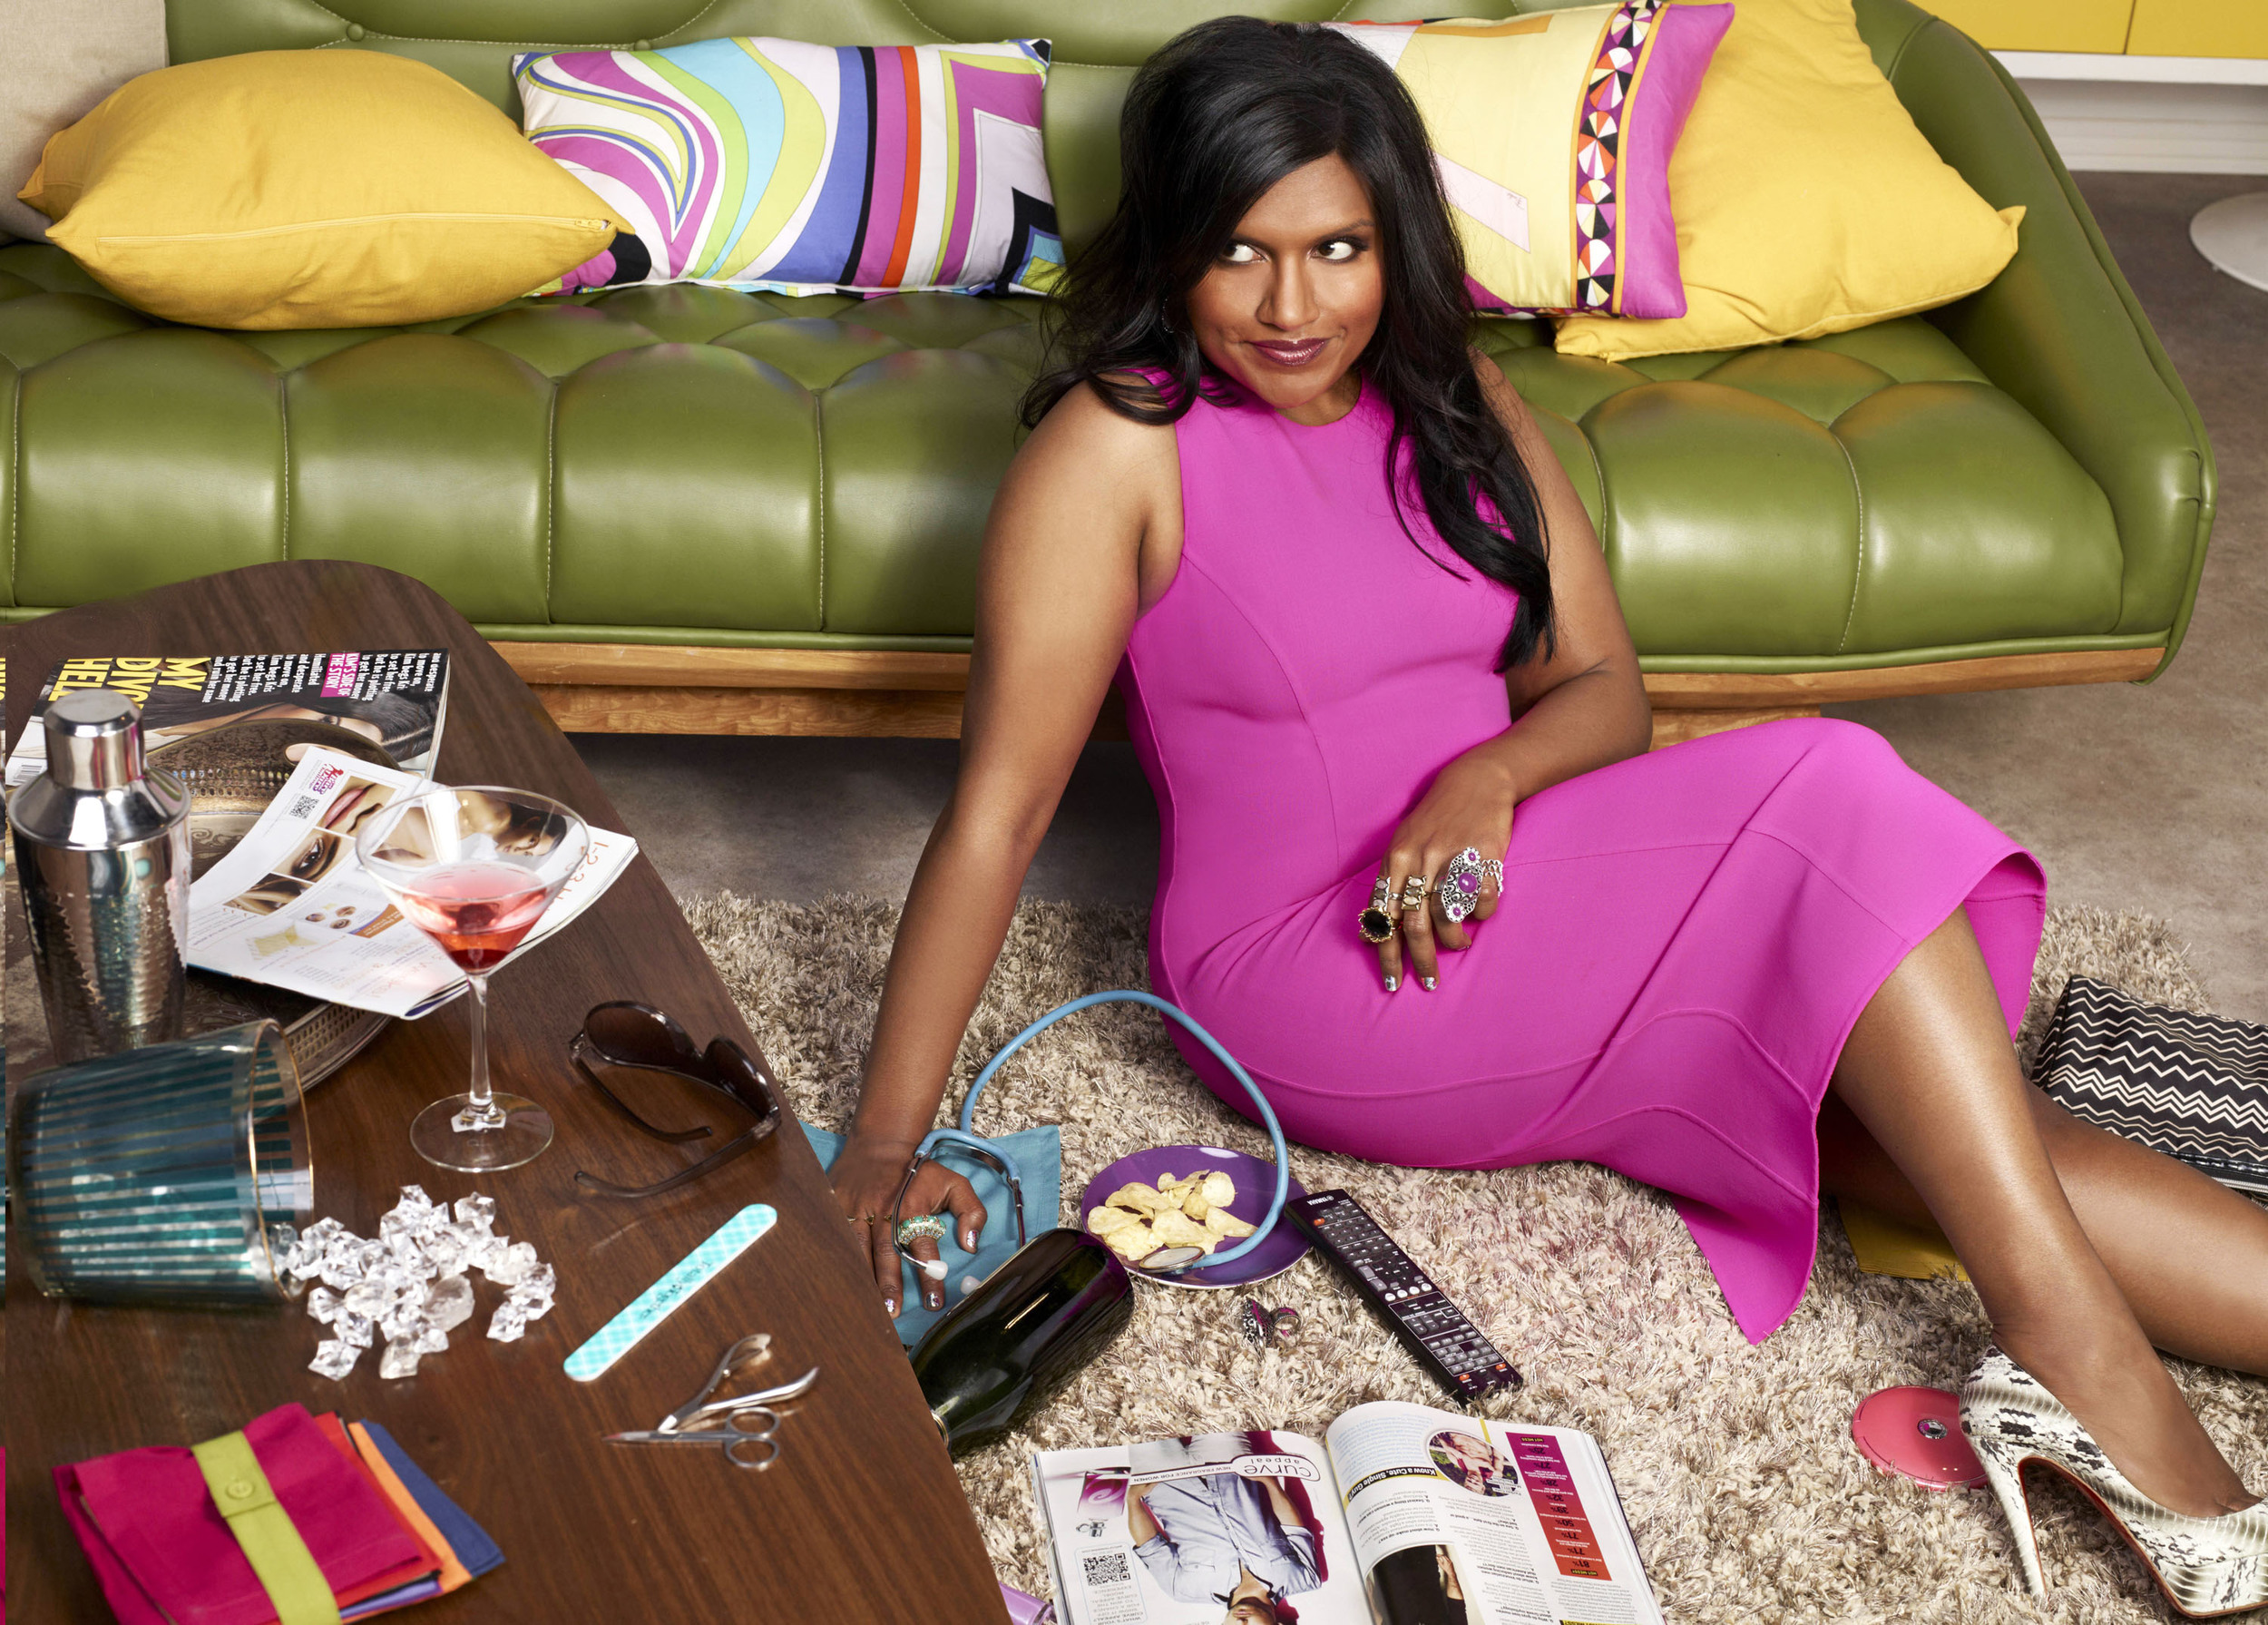 the-mindy-project-mindy-kaling.jpg